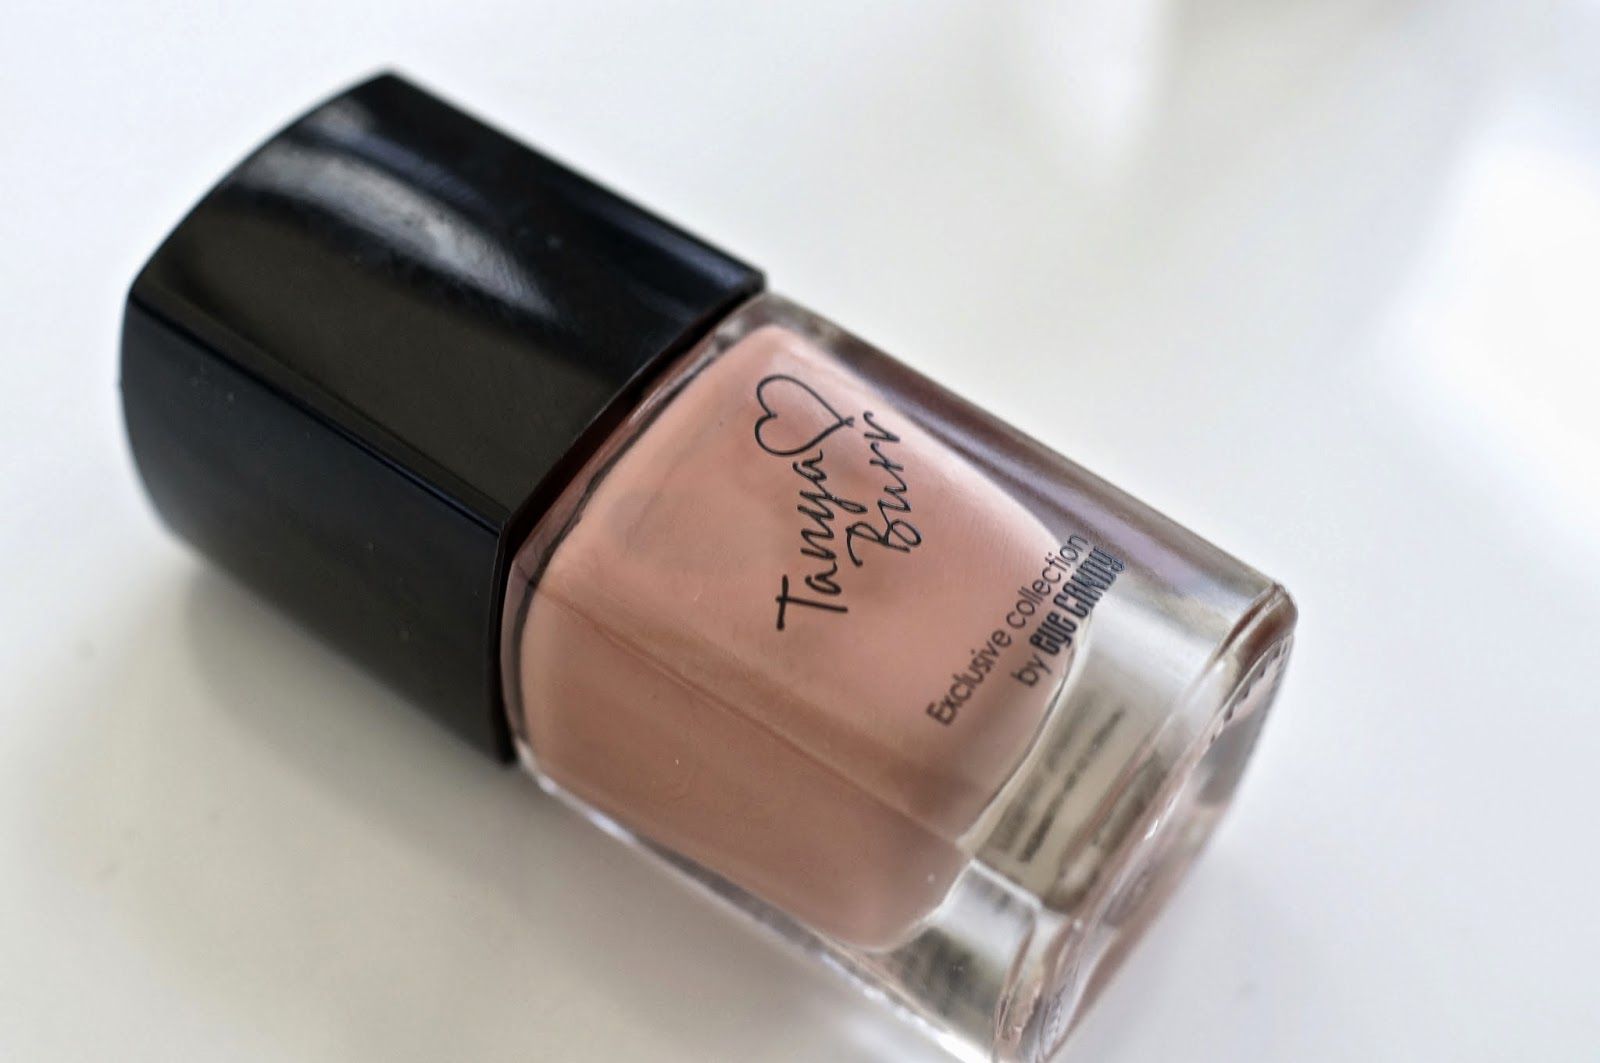 tanya burr peaches and cream